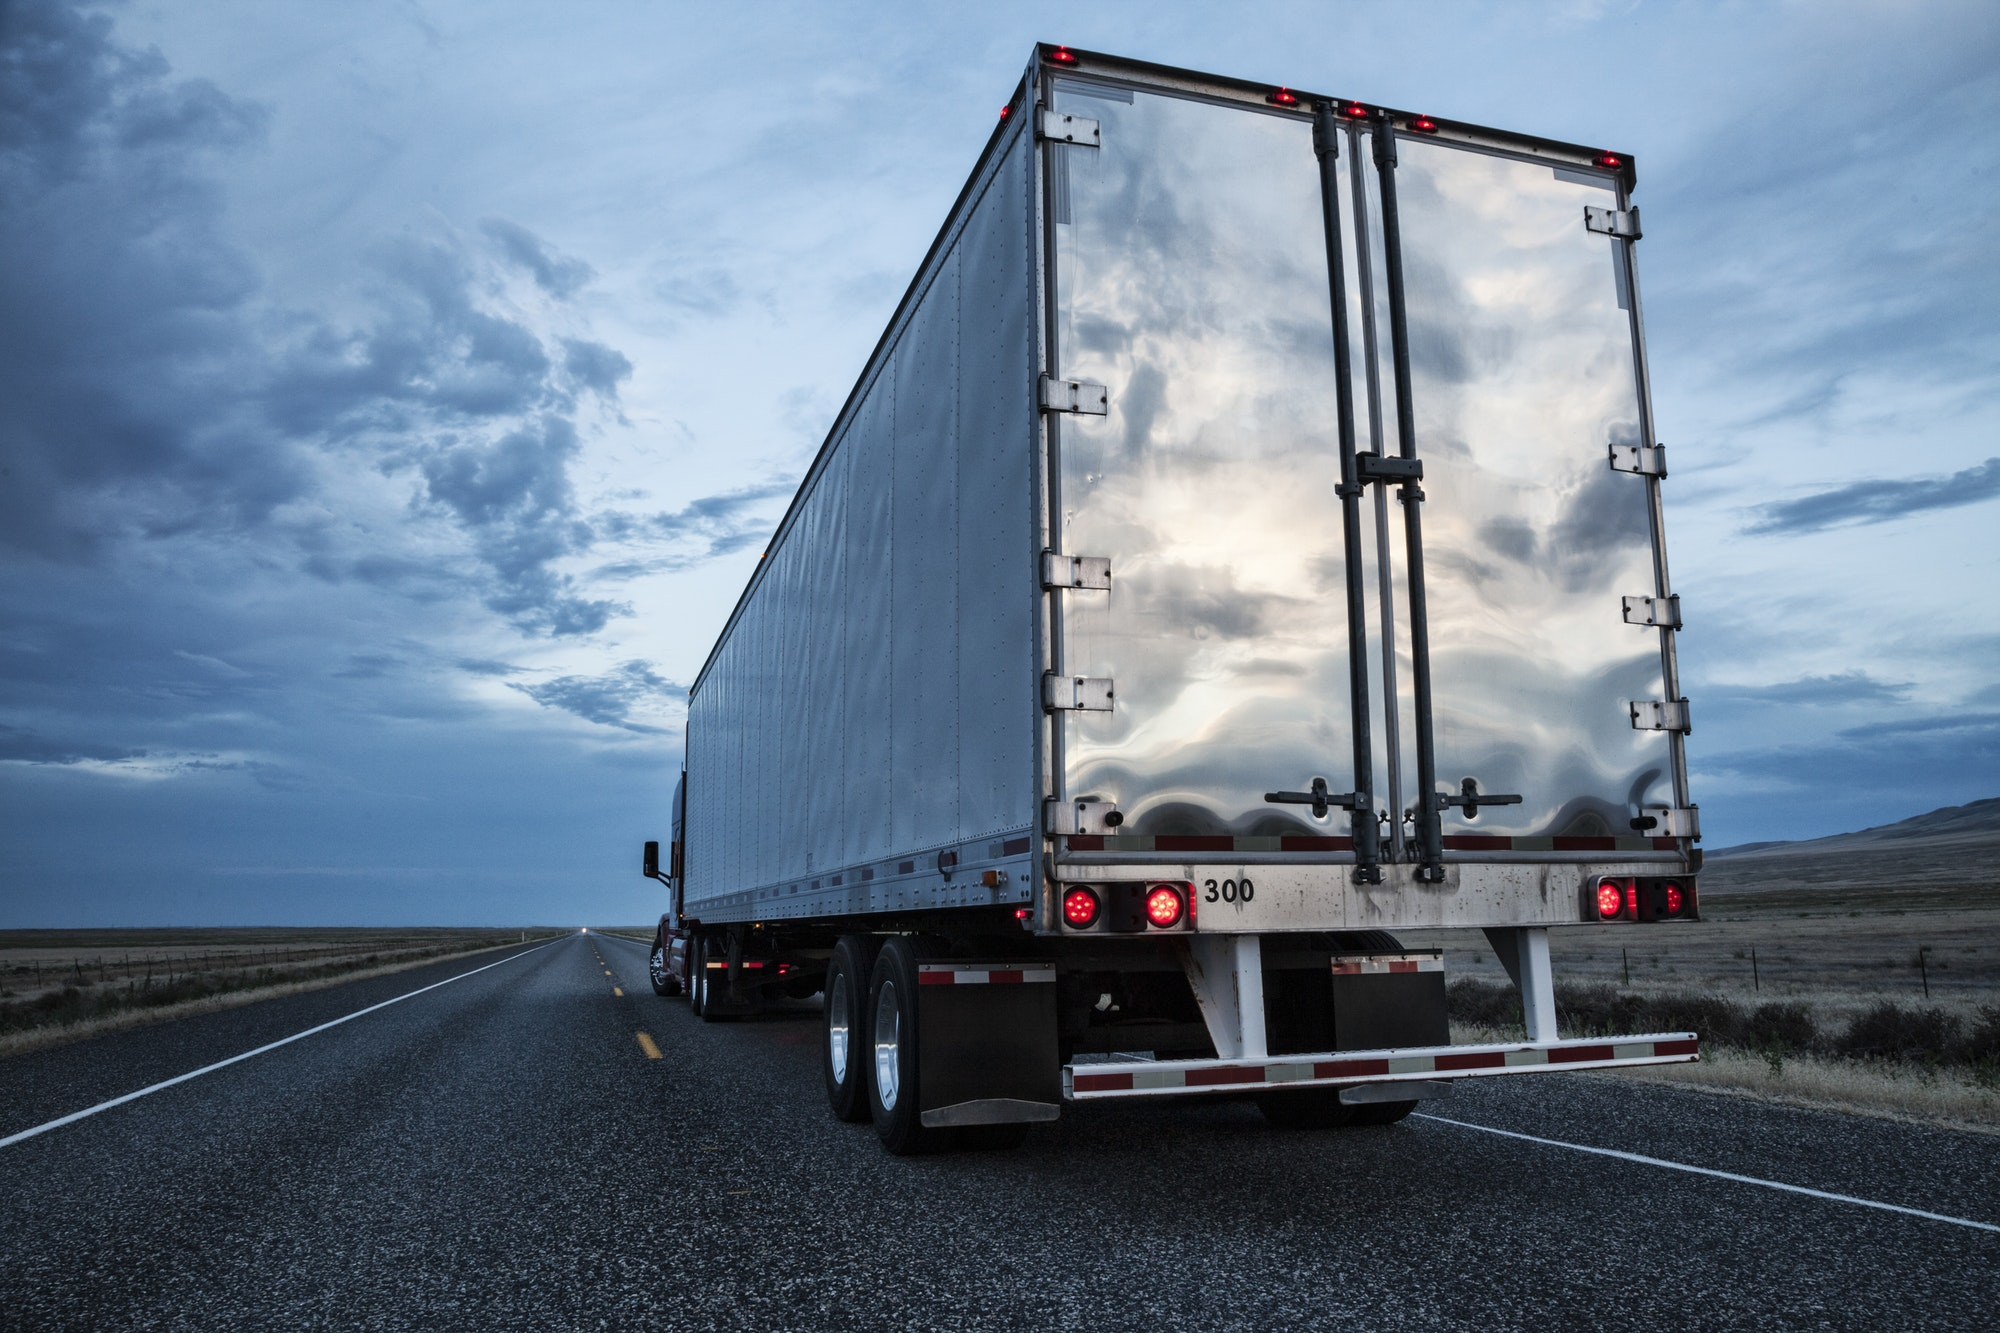 rear-view-of-the-trailer-on-a-class-8-commercial-truck-on-the-highway-.jpg